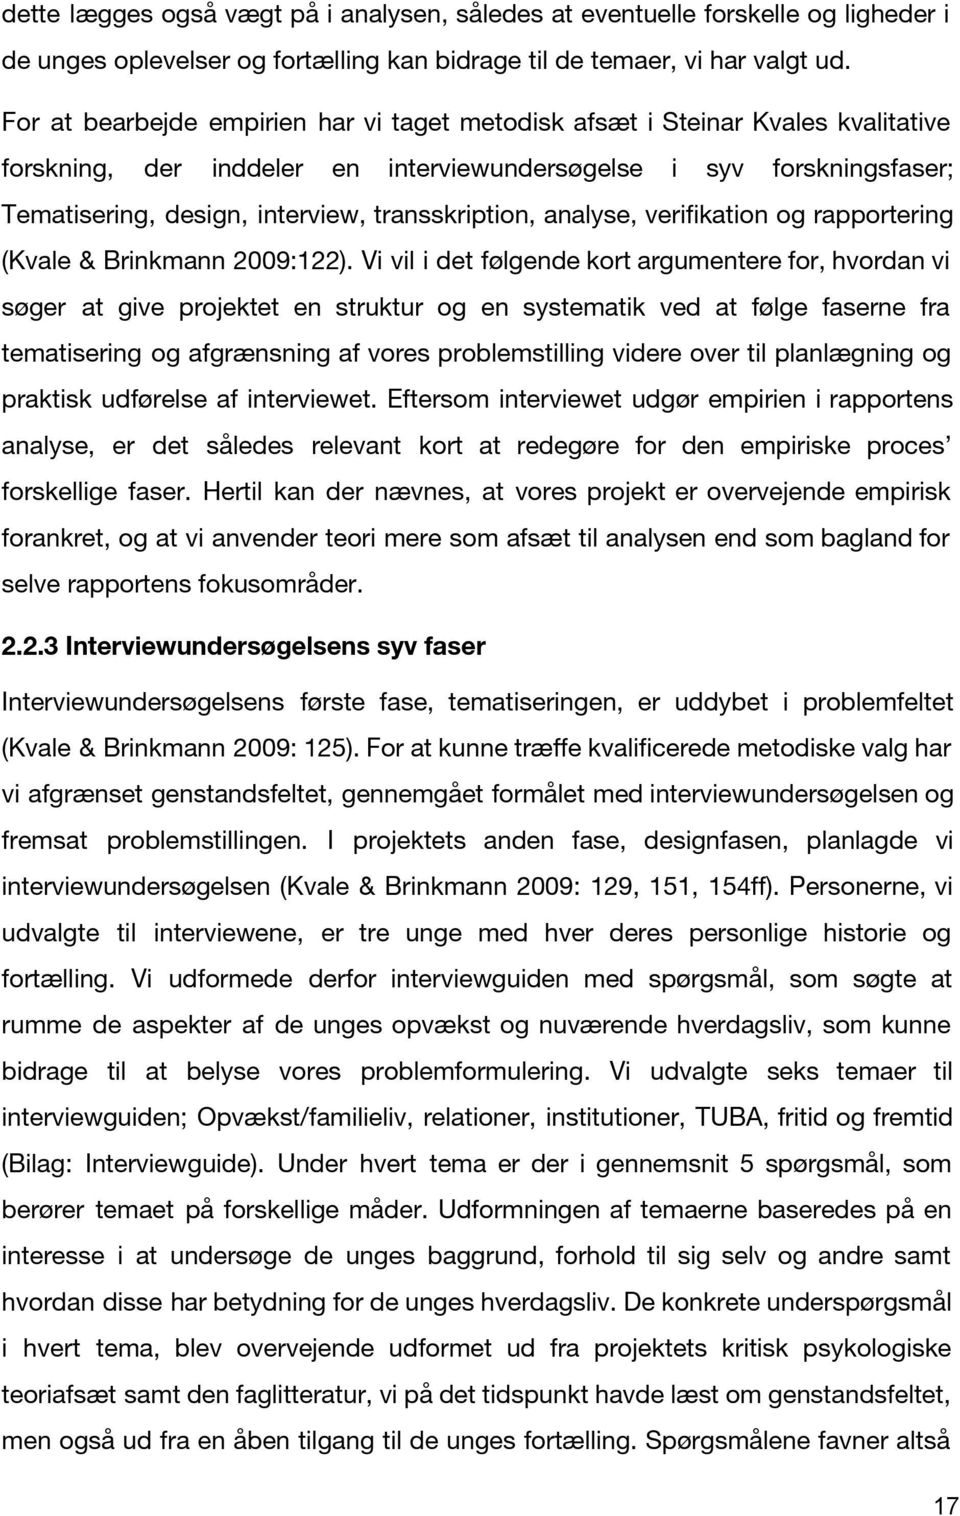 transskription, analyse, verifikation og rapportering (Kvale & Brinkmann 2009:122).